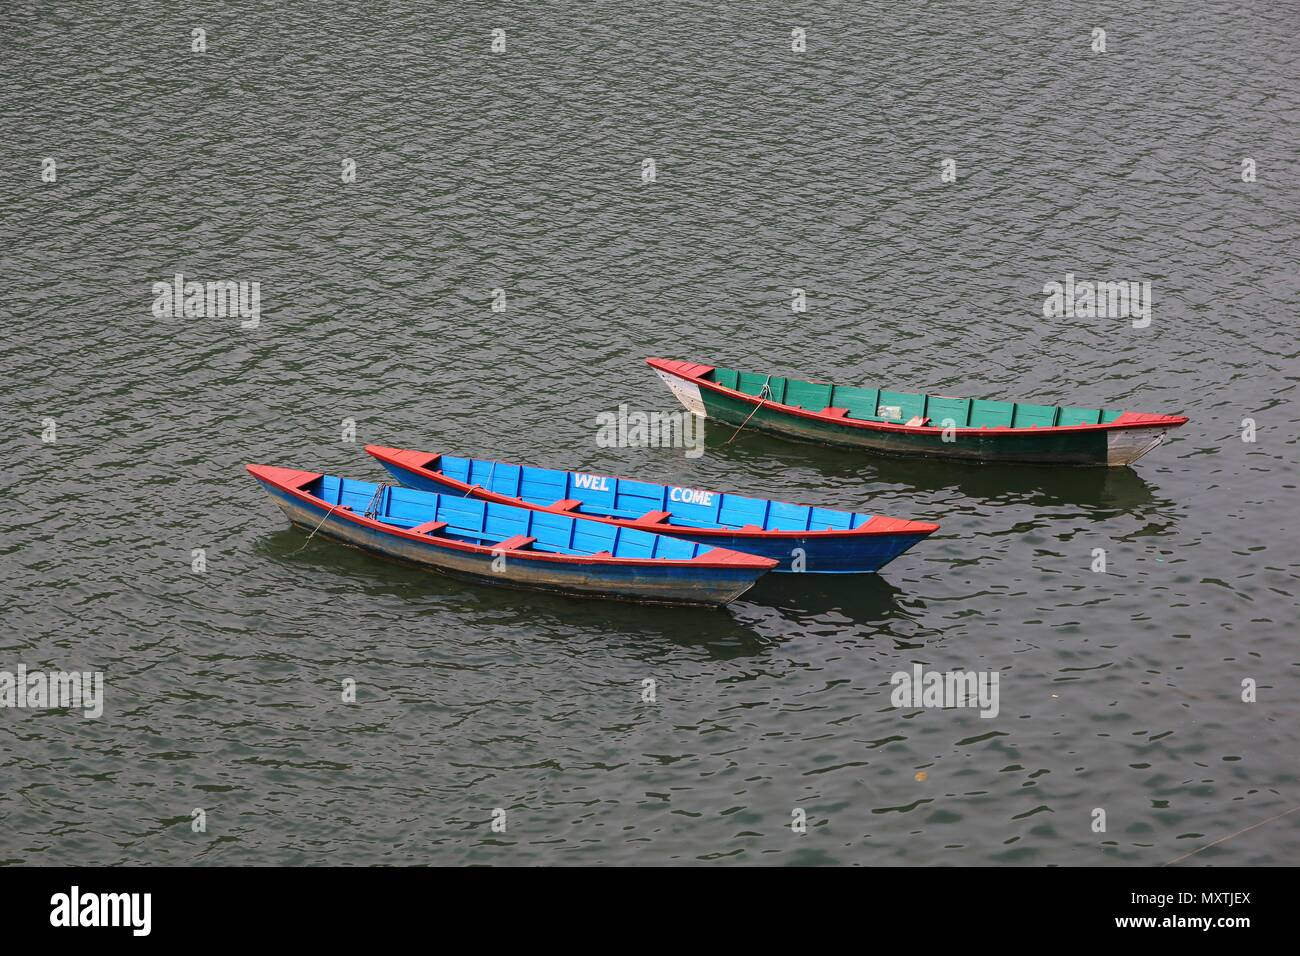 Timber rowing boats on Fewa lake, Pokhara. - Stock Image